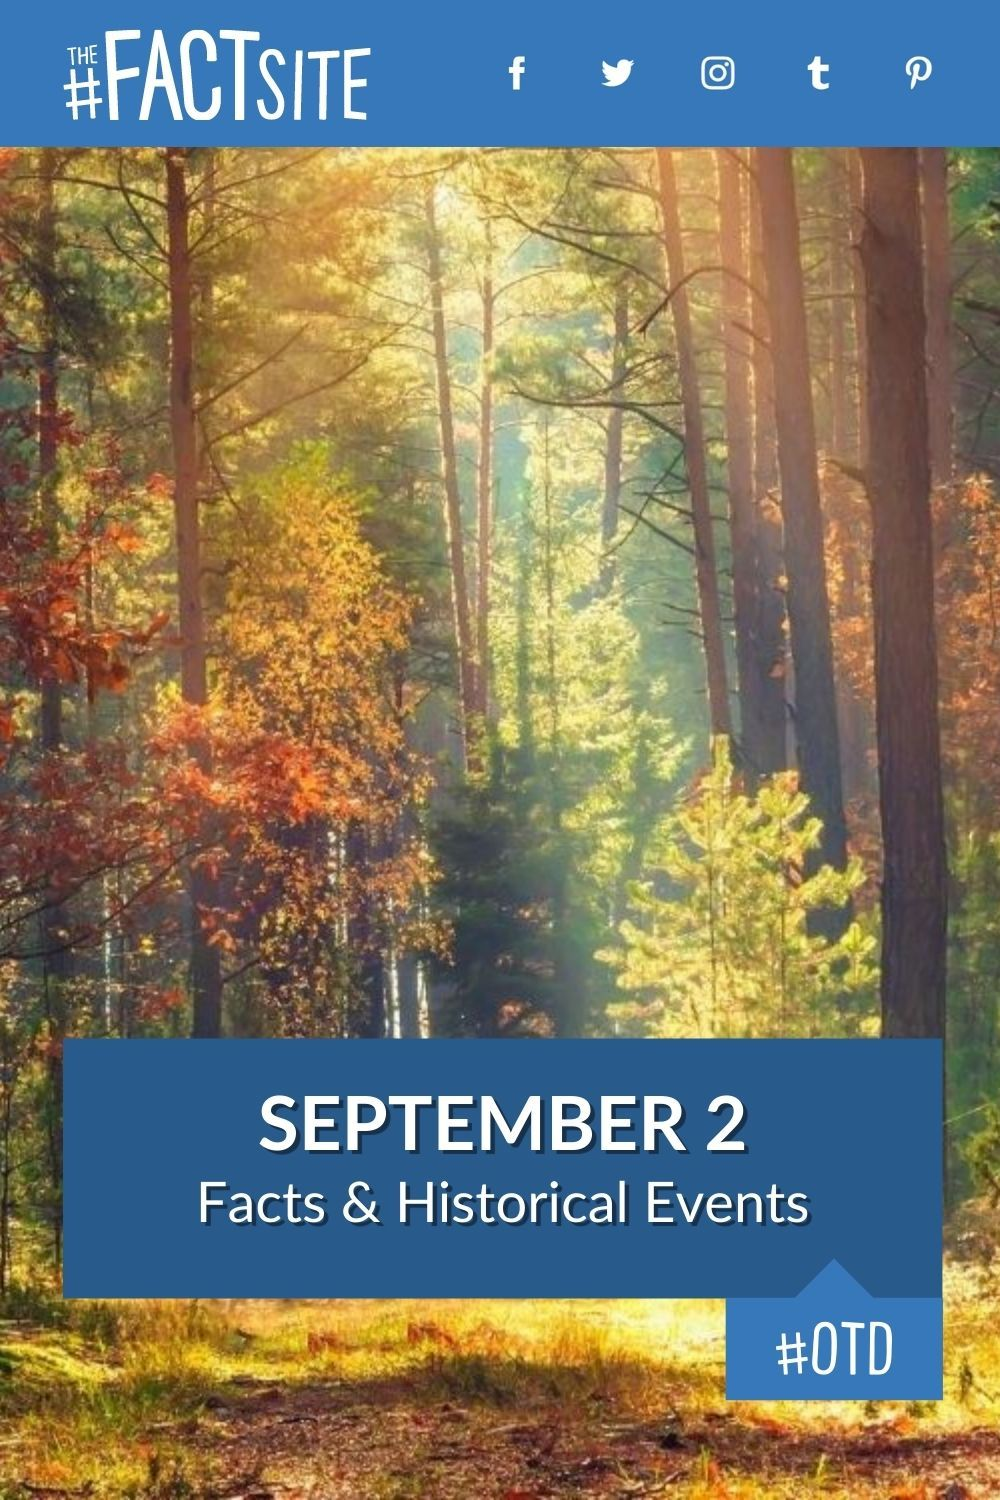 Facts & Historic Events That Happened on September 2